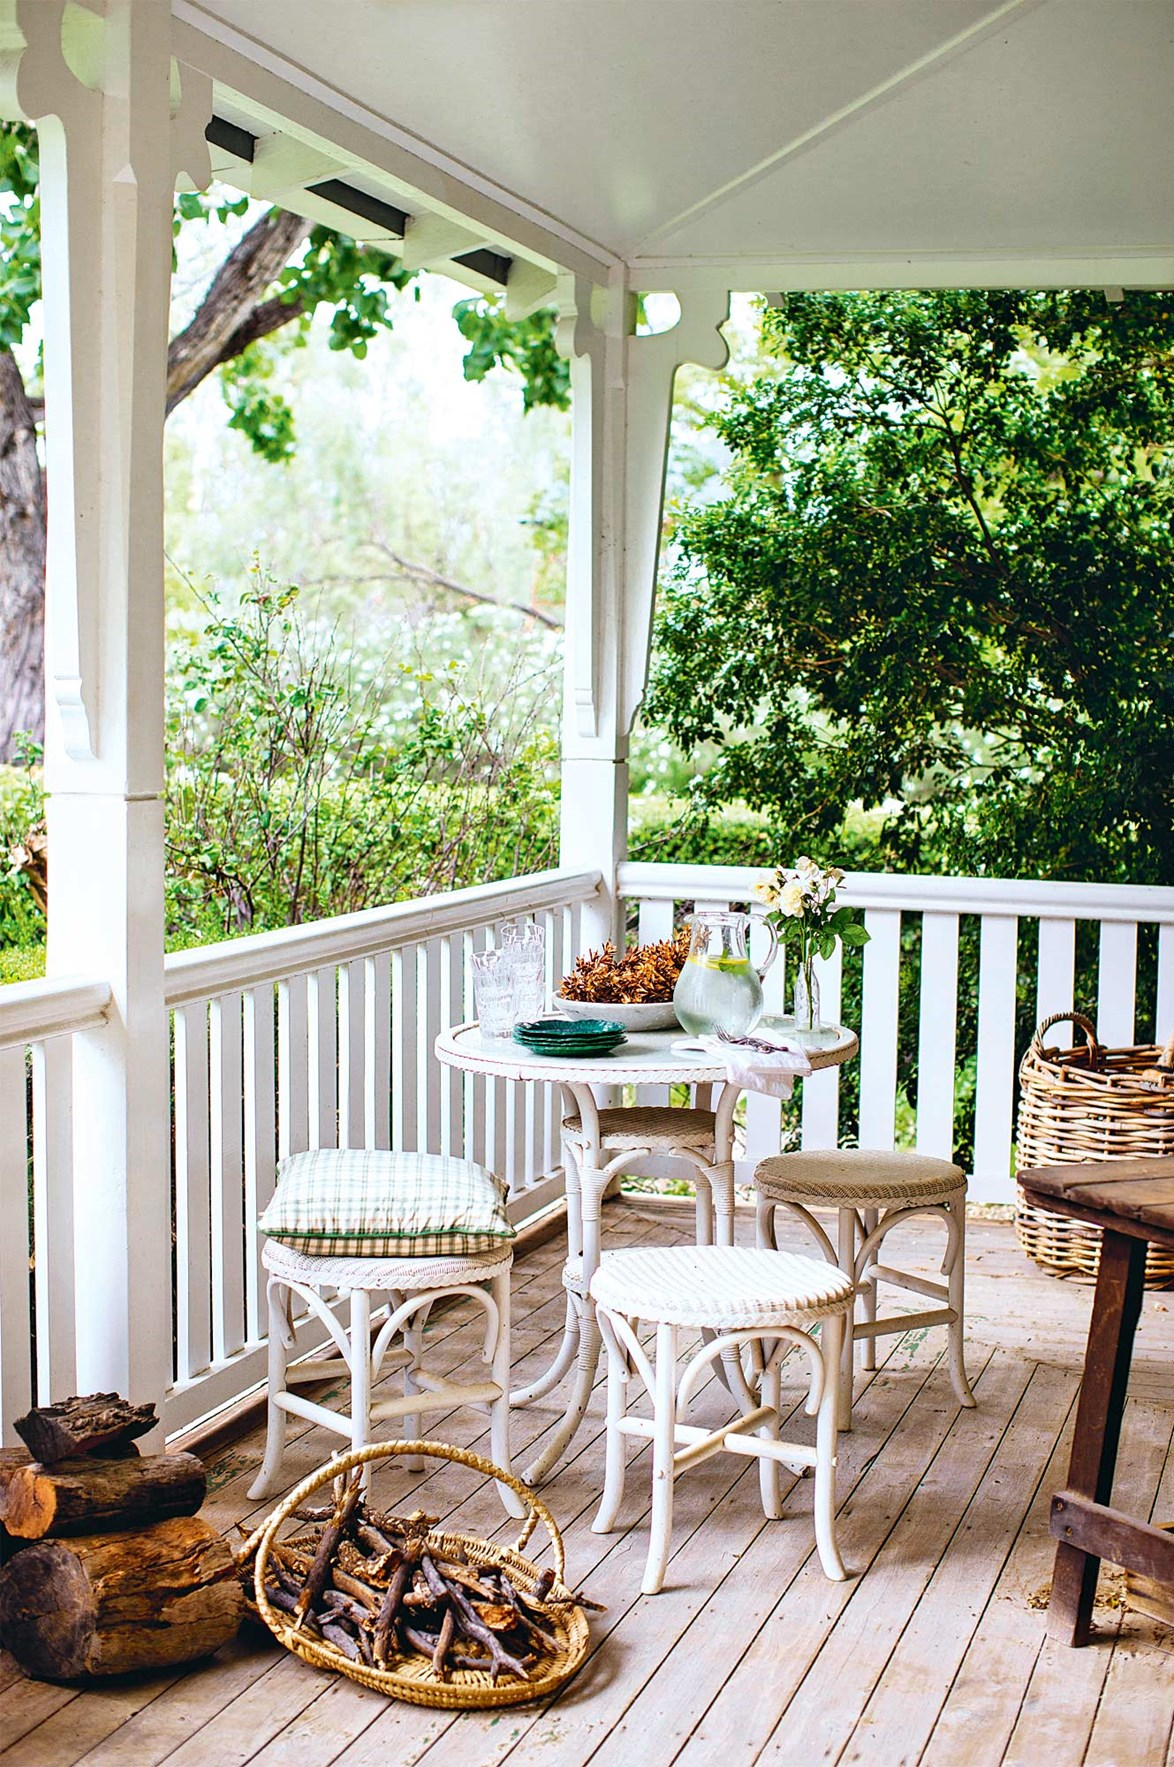 "If verandahs could talk! Four generations of the Livingstone family have enjoyed this leafy corner at the [stately Boolooroo homestead](https://www.homestolove.com.au/inviting-100-year-old-homestead-13775|target=""_blank"") near Moree. It's also where the family keeps firewood and kindling during winter. *Photo: Kara Rosenlund*"